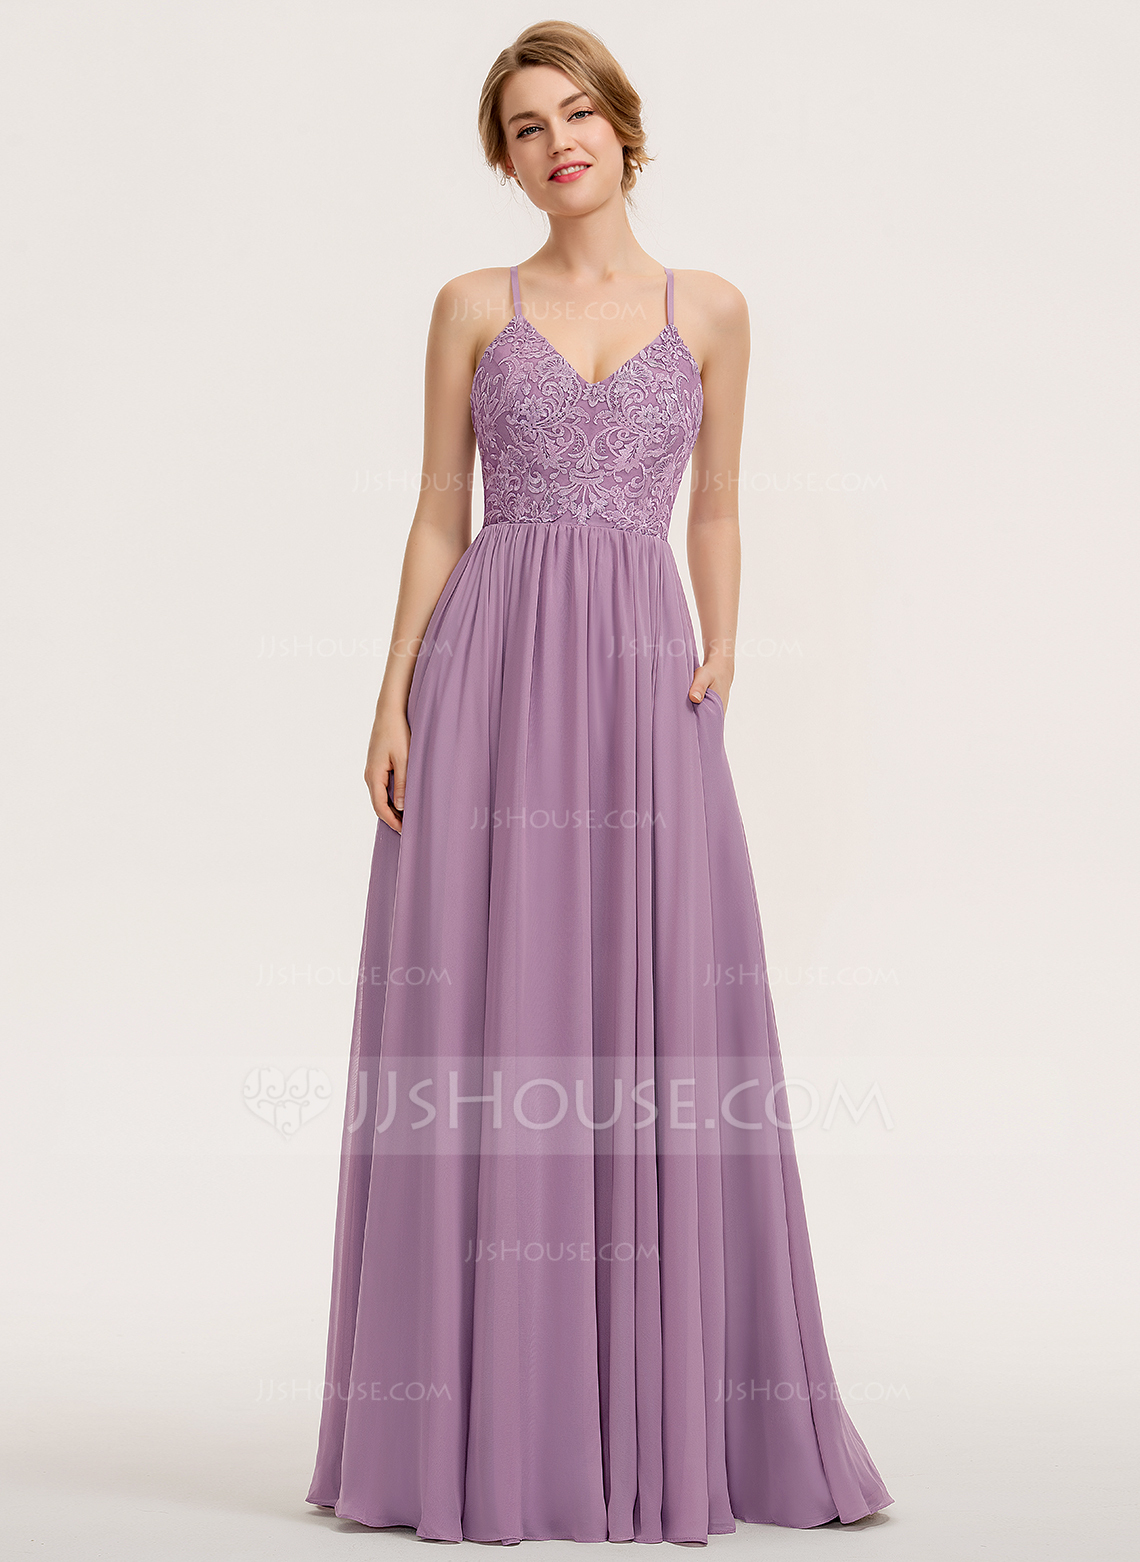 A-Line Sweetheart Floor-Length Chiffon Lace Bridesmaid Dress With Pockets